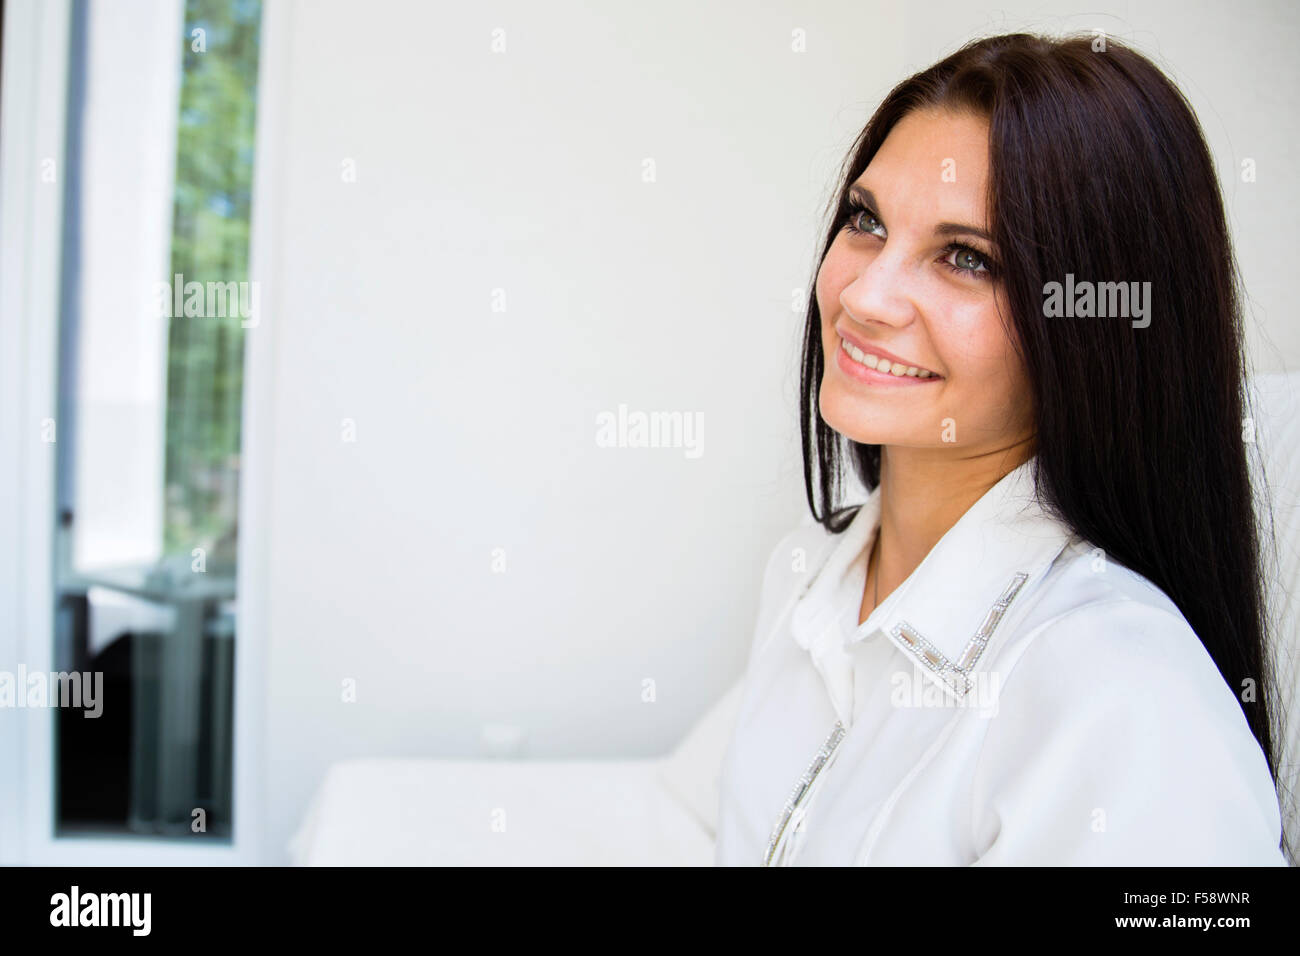 Portrait of a white beautiful woman smiling outdoors - Stock Image